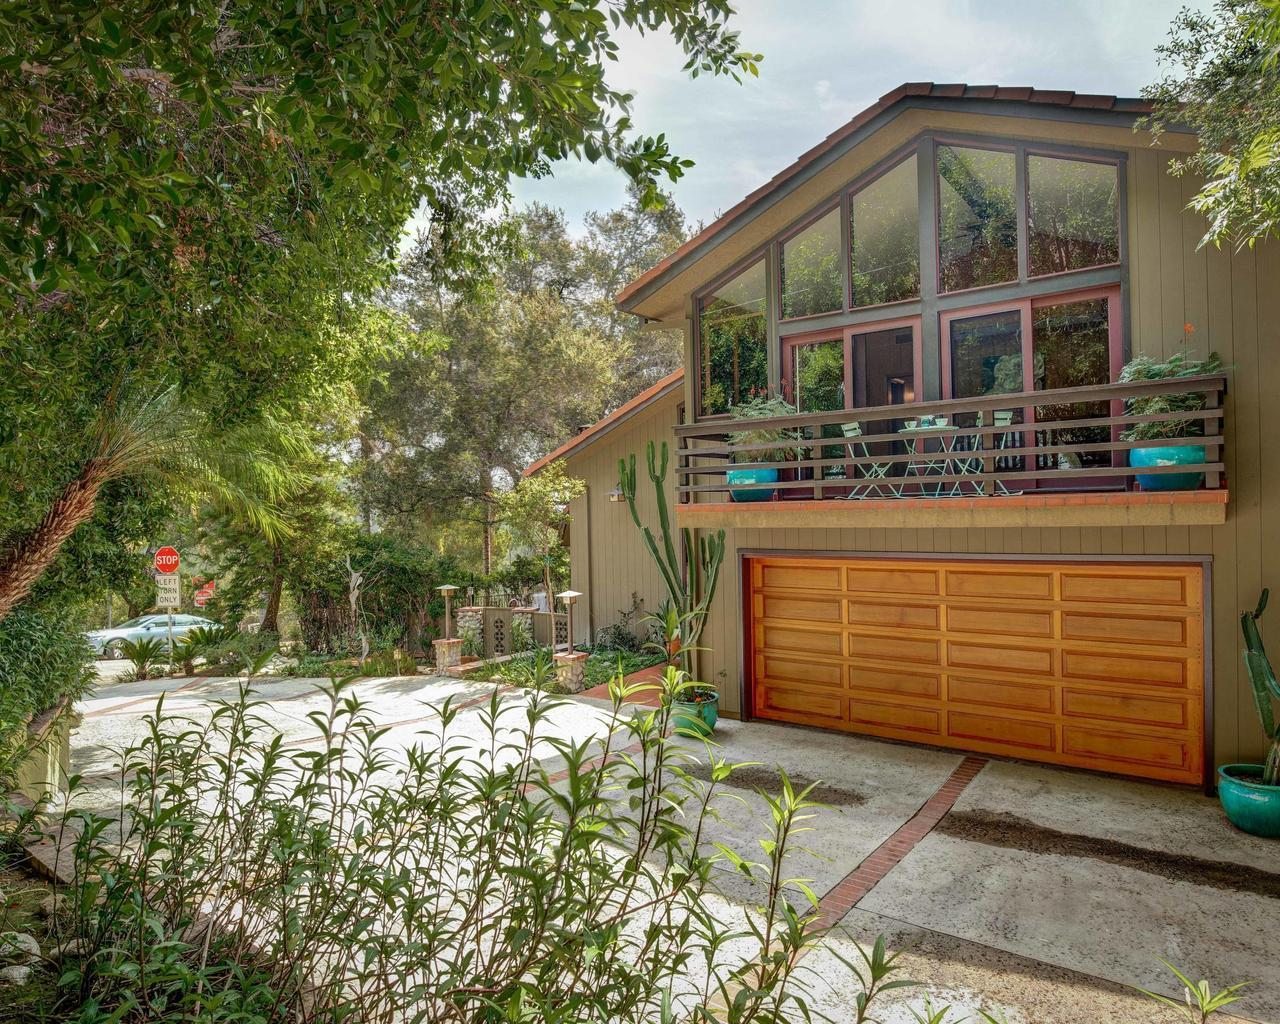 Local Real Estate: Homes for Sale — Sierra Madre, CA — Coldwell Banker